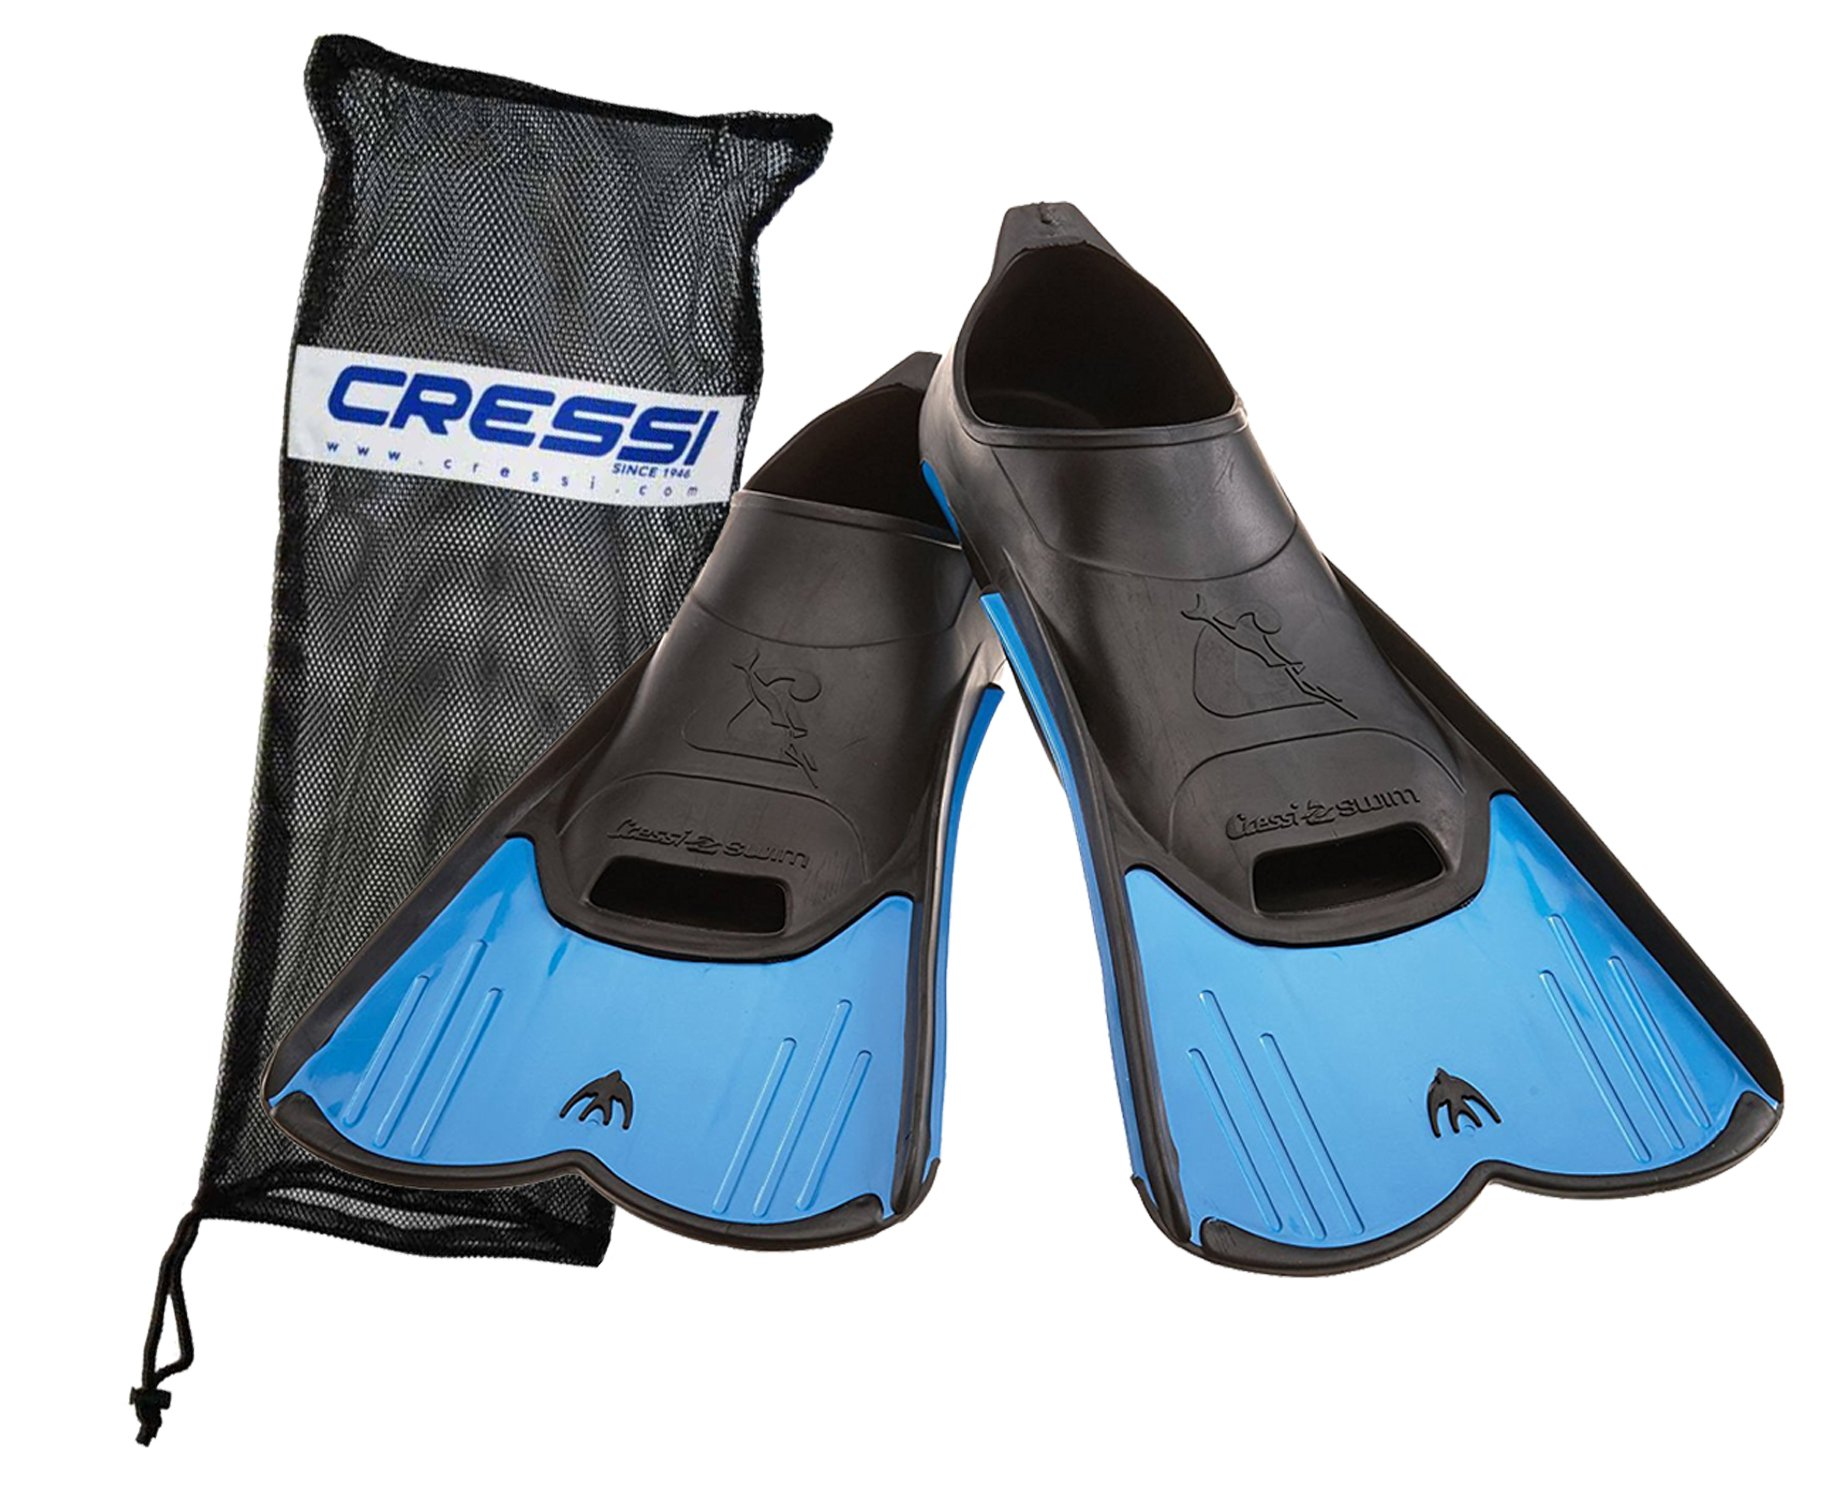 Cressi Light Fin Pool and Training Short Blade Fin with Bag, 5.5/6.5